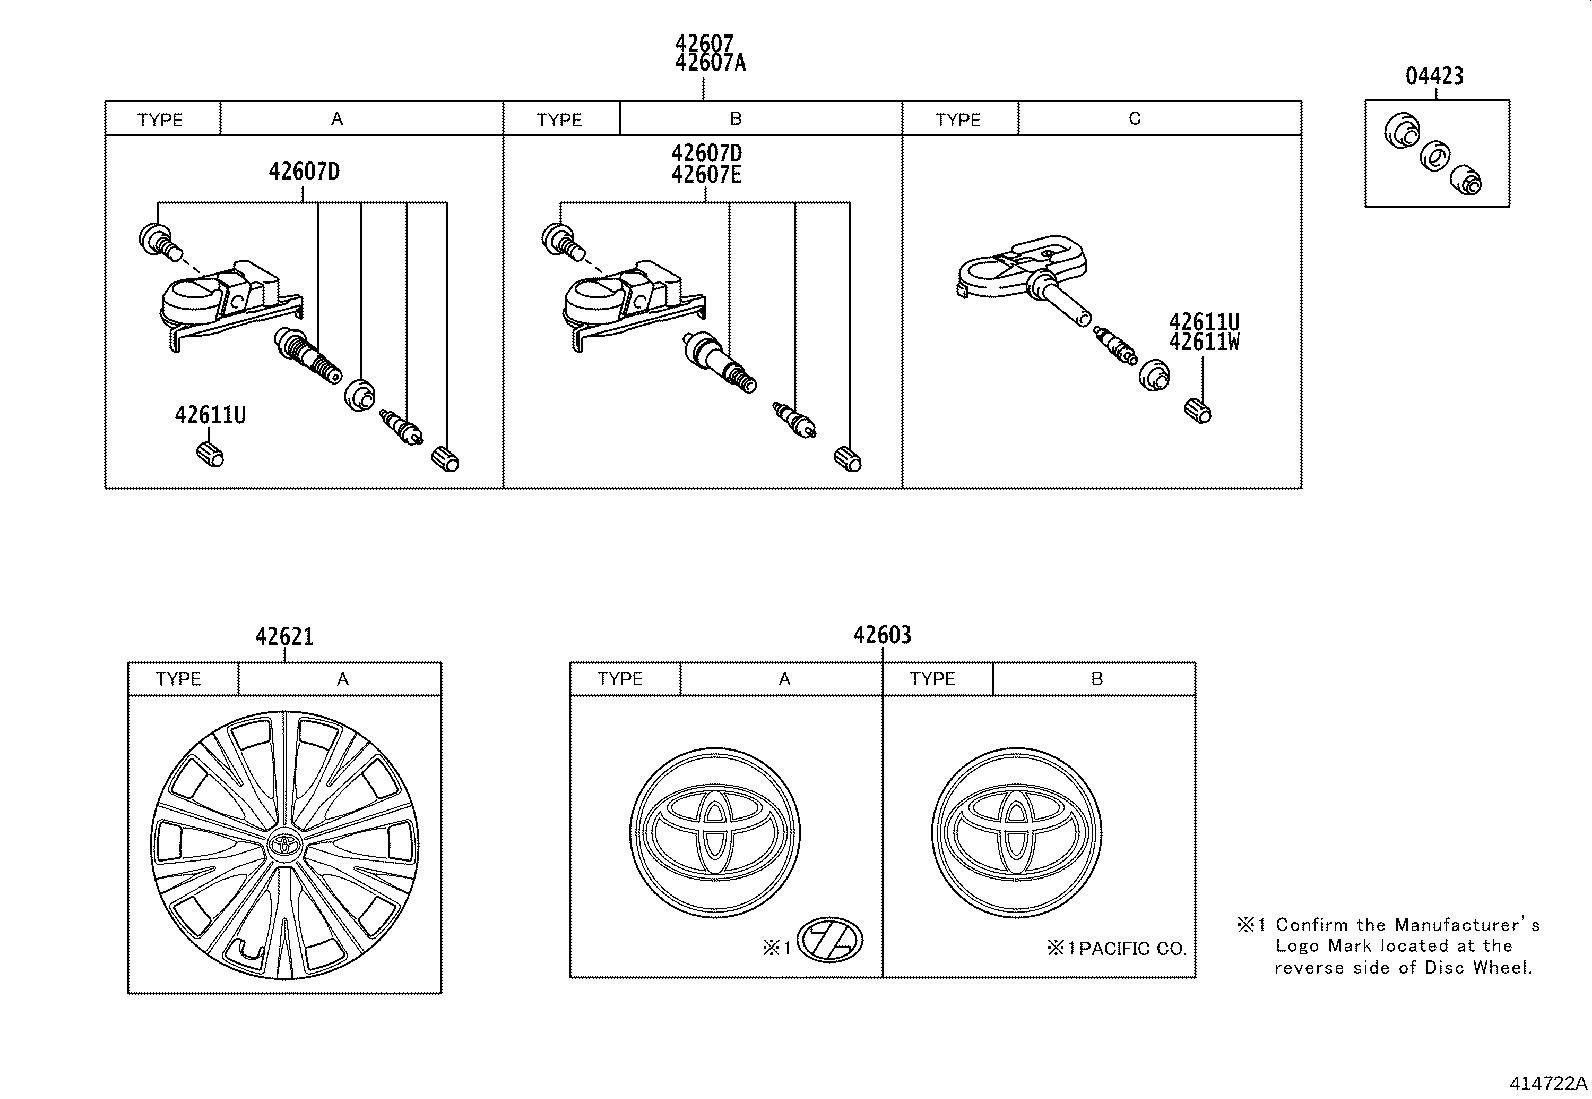 Diagram DISC WHEEL & WHEEL CAP for your Toyota Camry